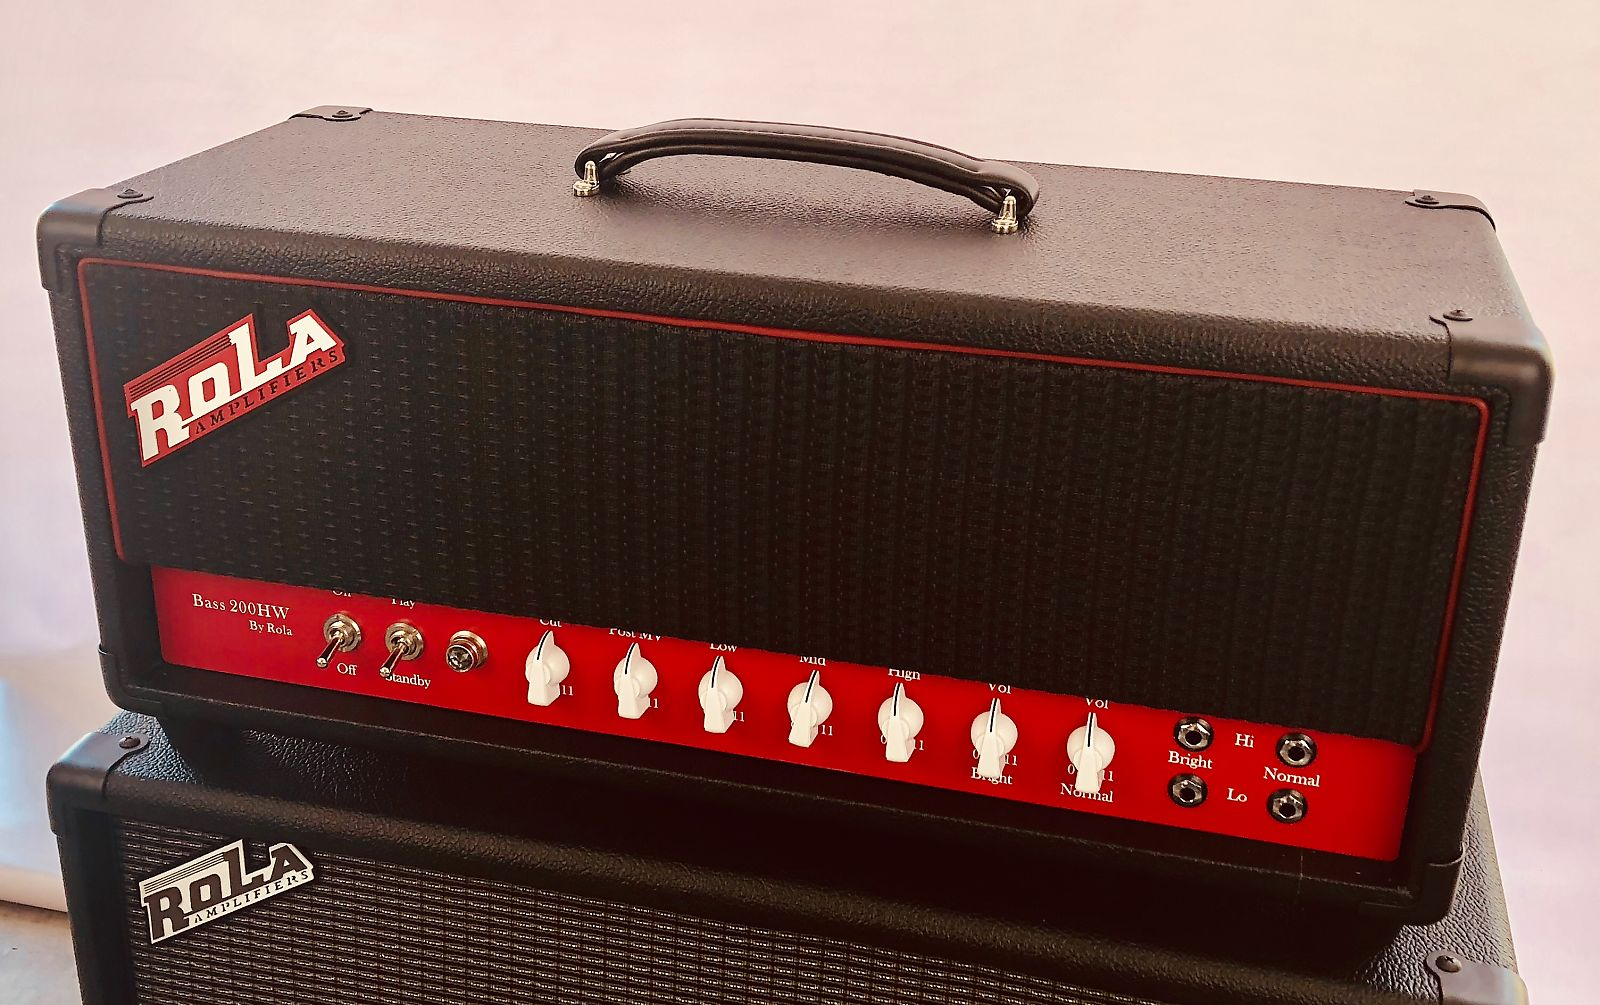 Rola Amplifiers, Bass 200HW, Hand wired in the USA